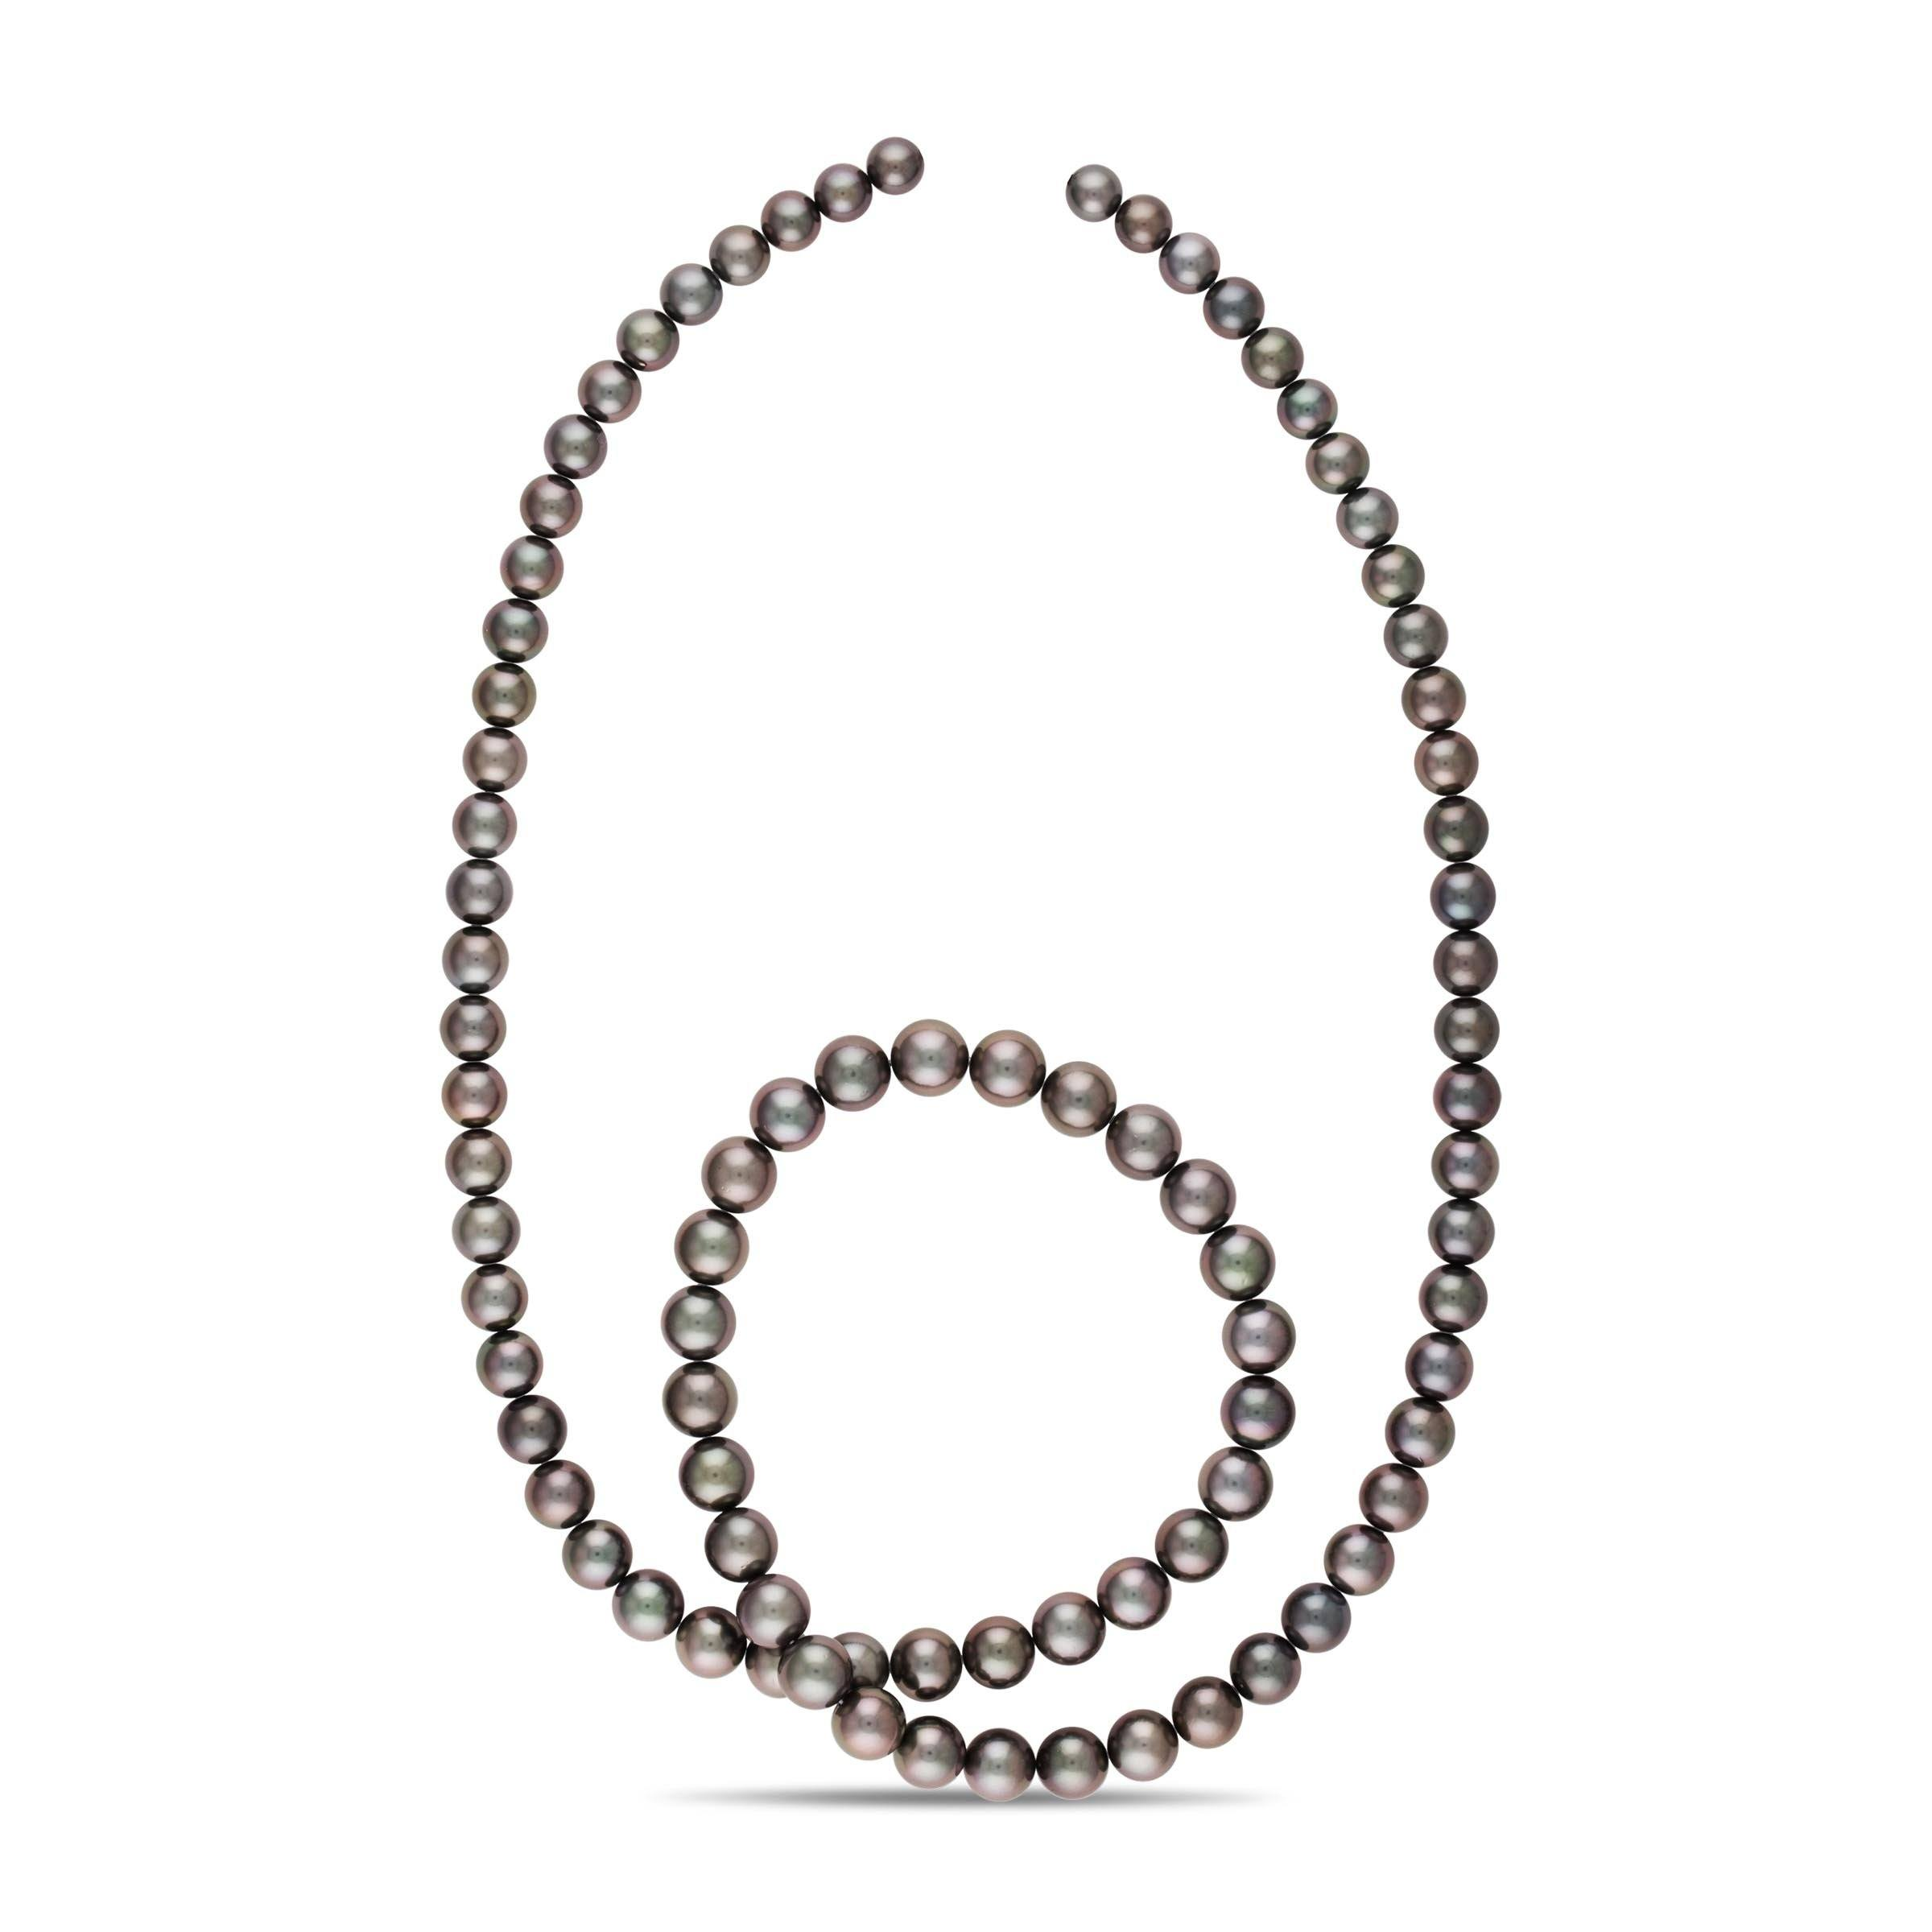 35-inch 8.2-10.9 mm AA+/AAA Round Tahitian Pearl Necklace